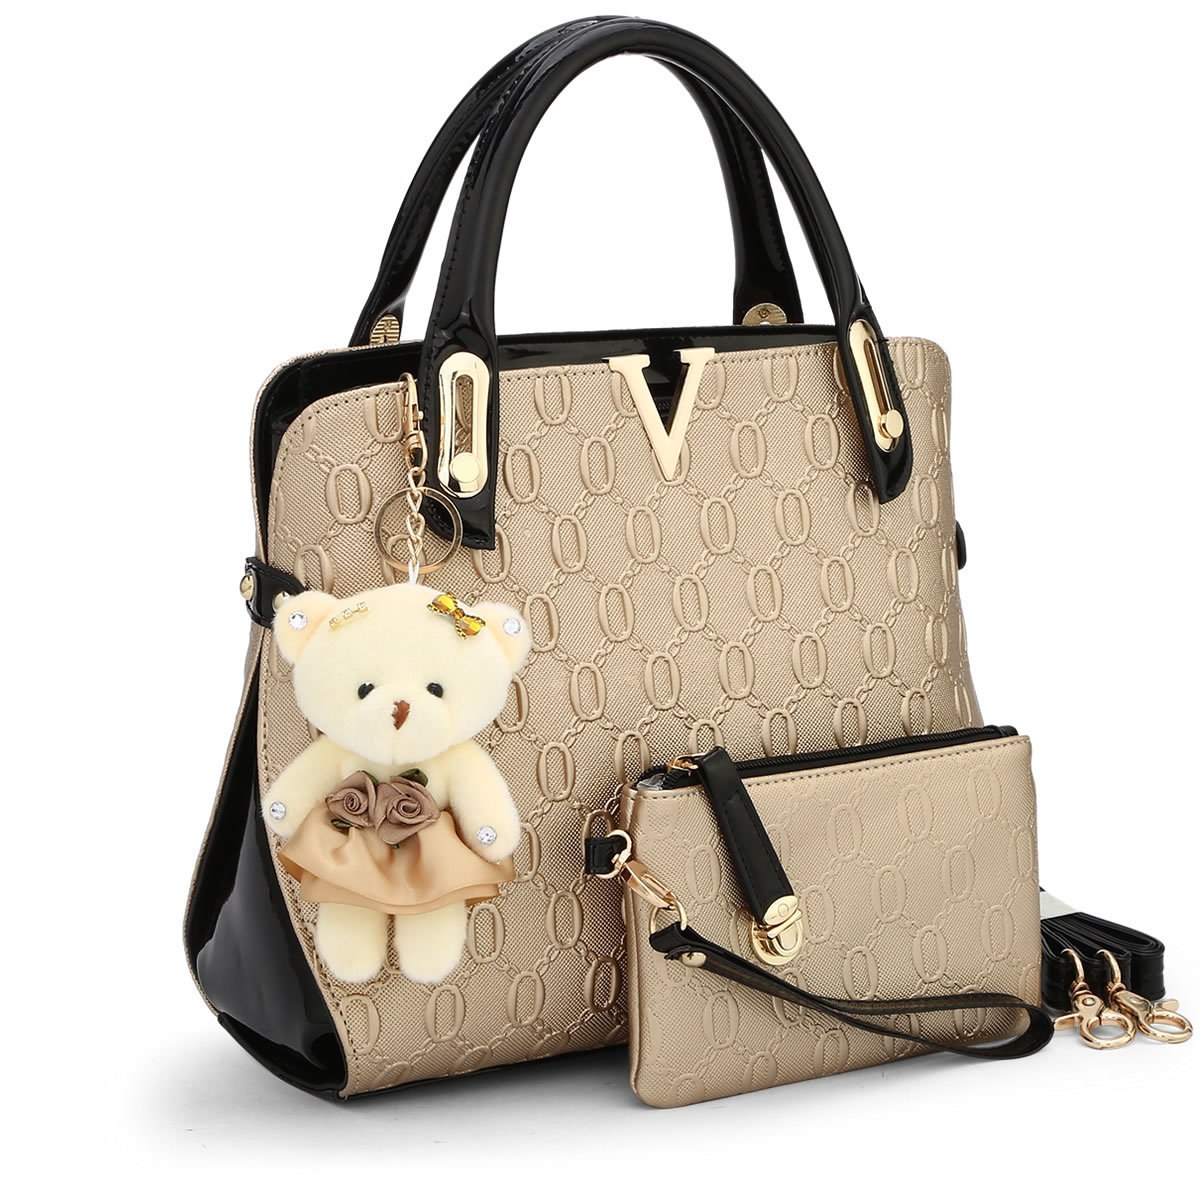 Compare Prices on Classy Handbags- Online Shopping/Buy Low Price ...